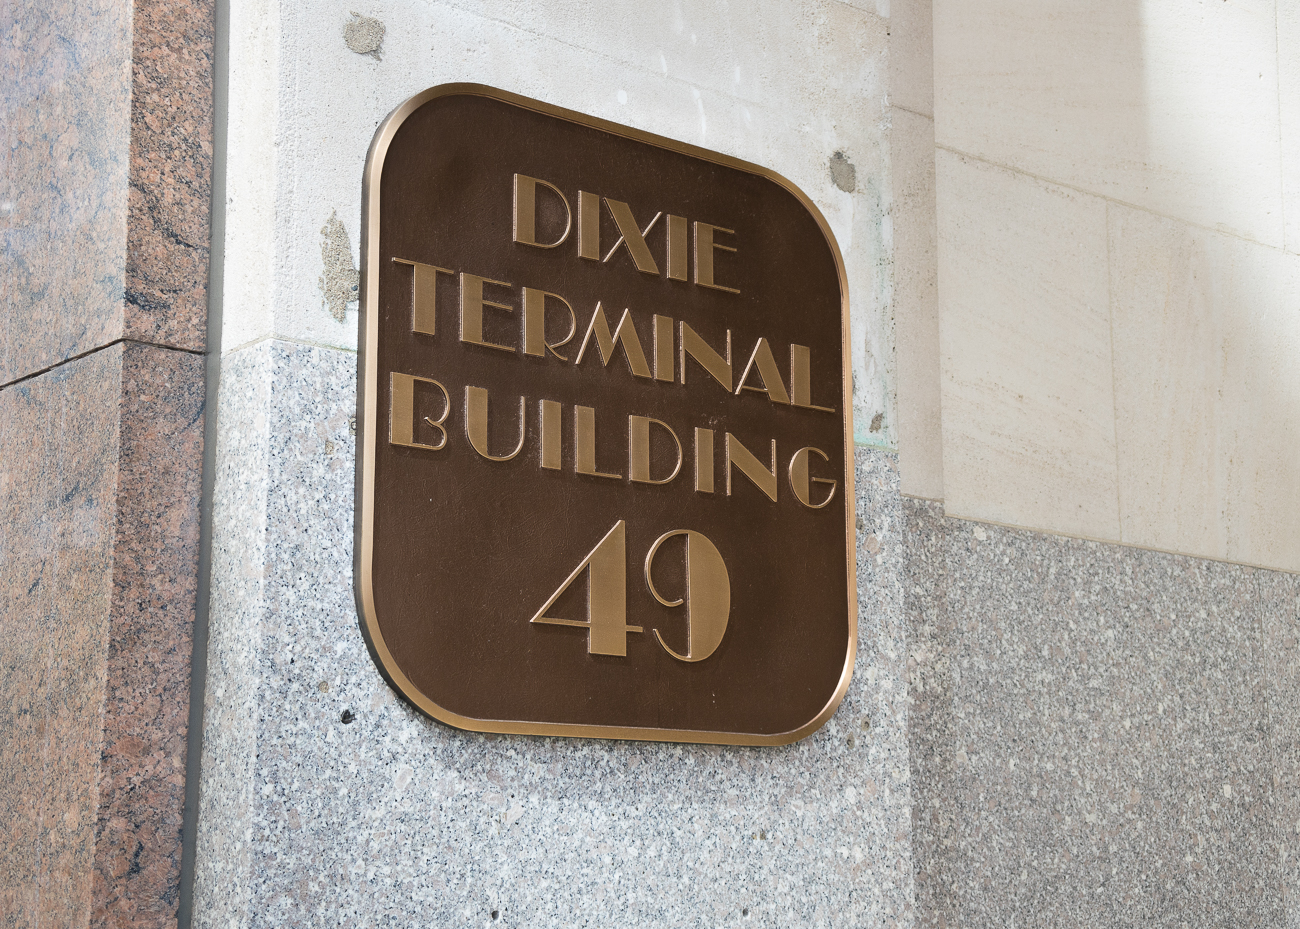 Nearly 100 years ago, the ornate Dixie Terminal Building was constructed at 4th and Walnut Streets in Downtown Cincinnati. Designed by the firm of Garber & Woodward, the 10-story building was originally designed to receive streetcars, and later busses in the 1950s when streetcar service was halted. ADDRESS: 49 East 4th Street (45202) / Image: Phil Armstrong, Cincinnati Refined // Published: 10.3.18